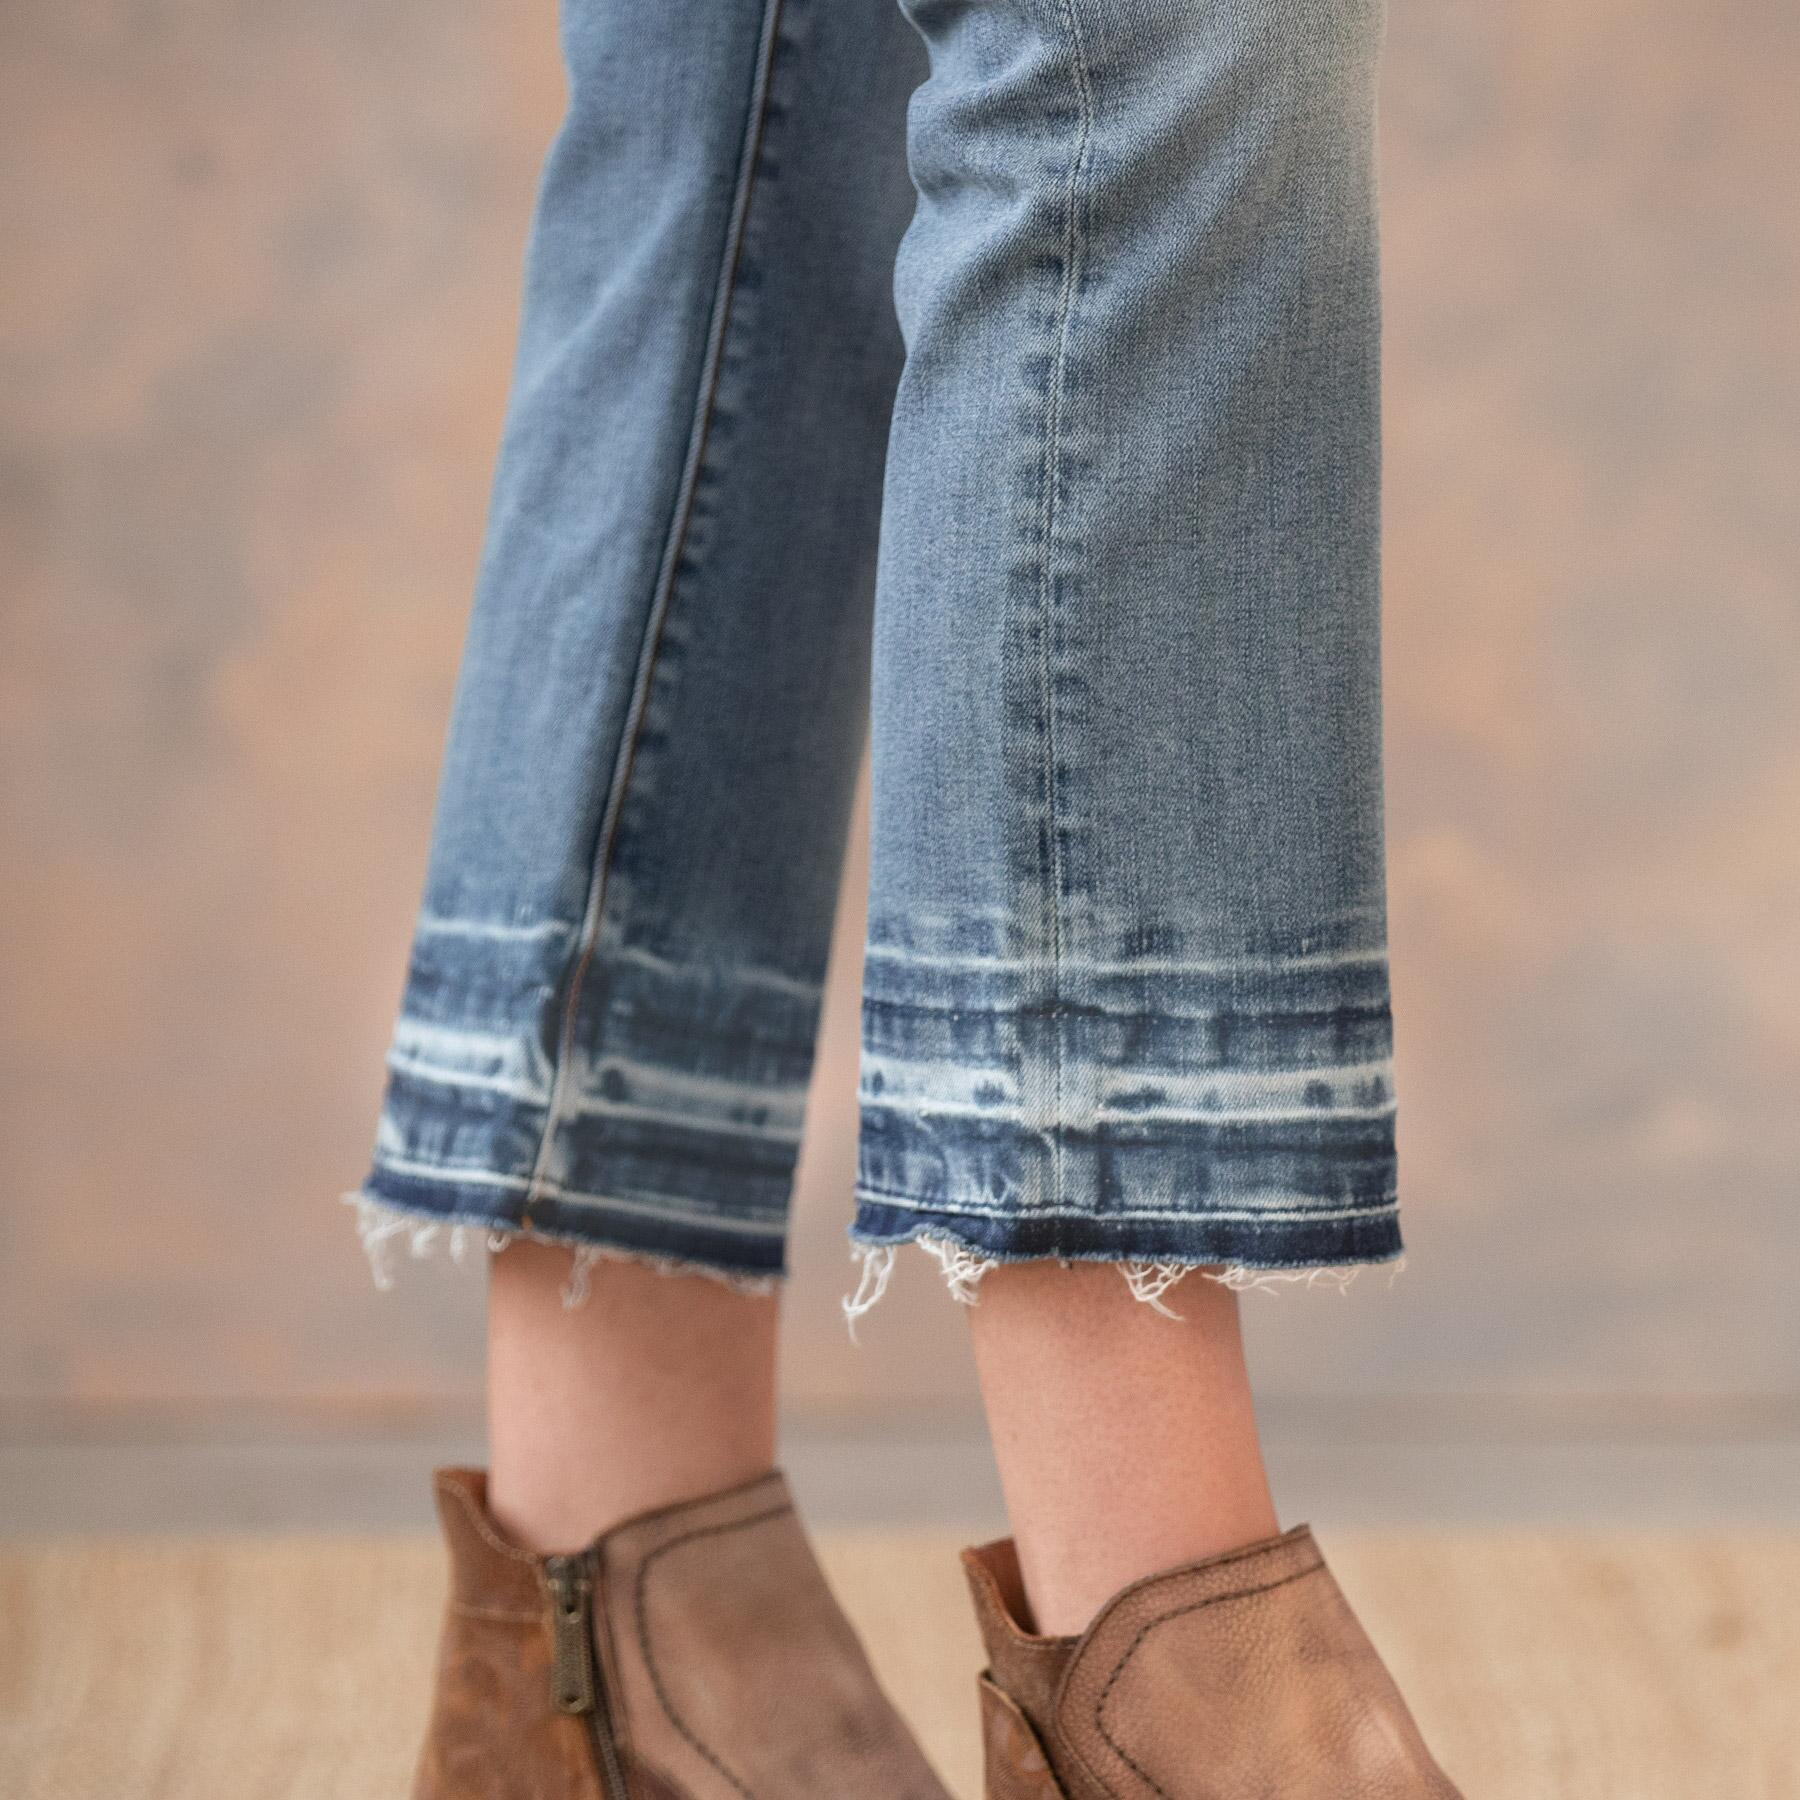 ROXY LIGHT WASH JEANS: View 5